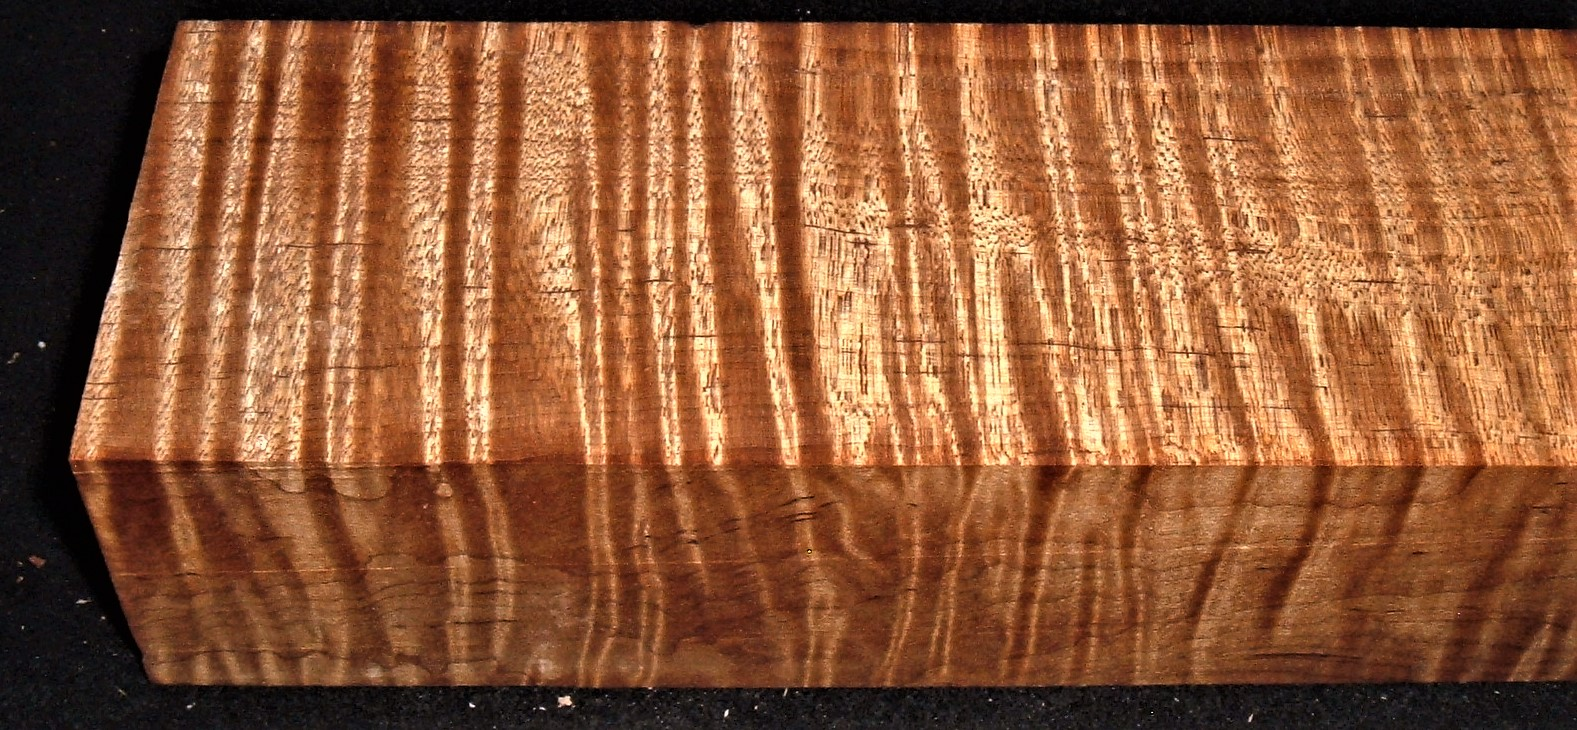 RMT-2601JJ, 2-1/4x3x15, Torrefied Roasted, Curly Tiger Maple, Turning Block